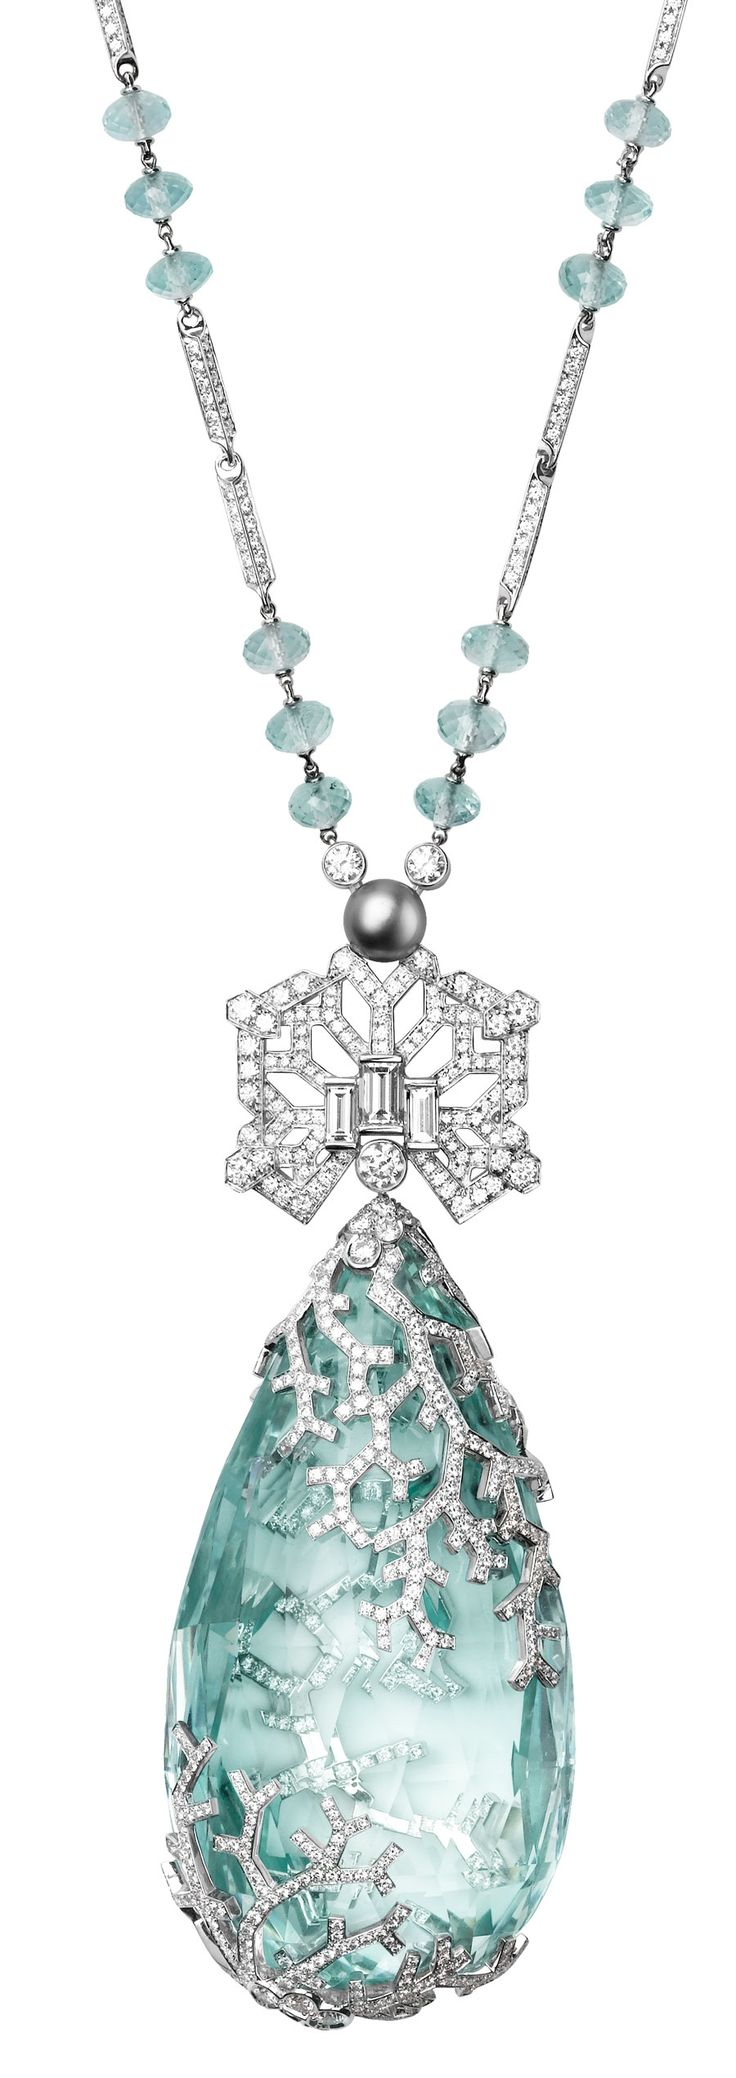 Cartier Biennale Necklace - Platinum, one 236.27-carat aquamarine, one natural pearl, facetted aquamarine beads, baguette-cut diamonds, brilliants. Circa 2012